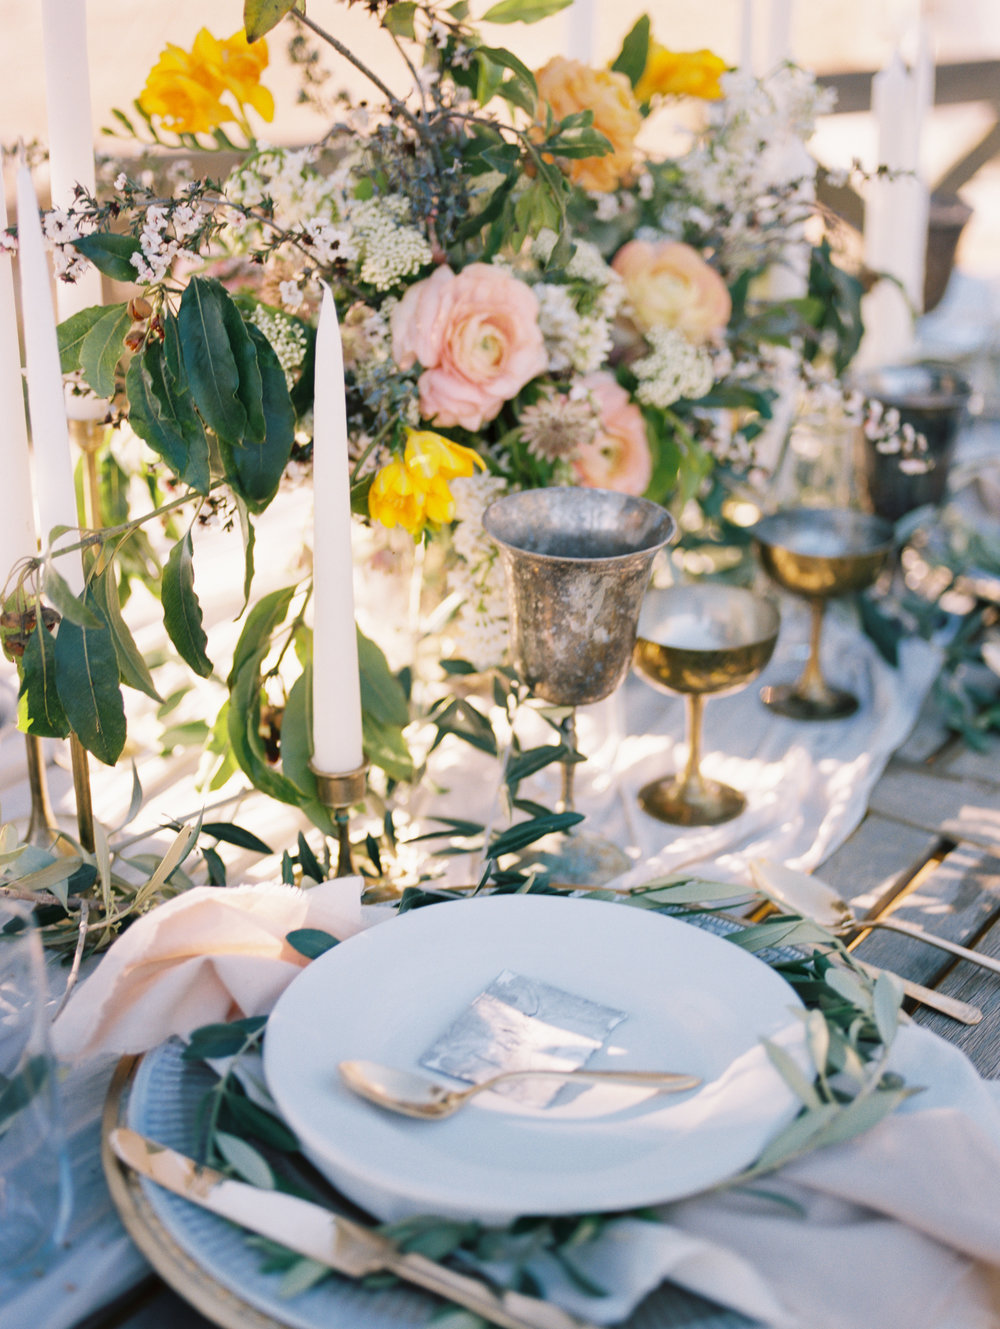 Olive Mill Wedding Inspiration - Fine Art Reception Table